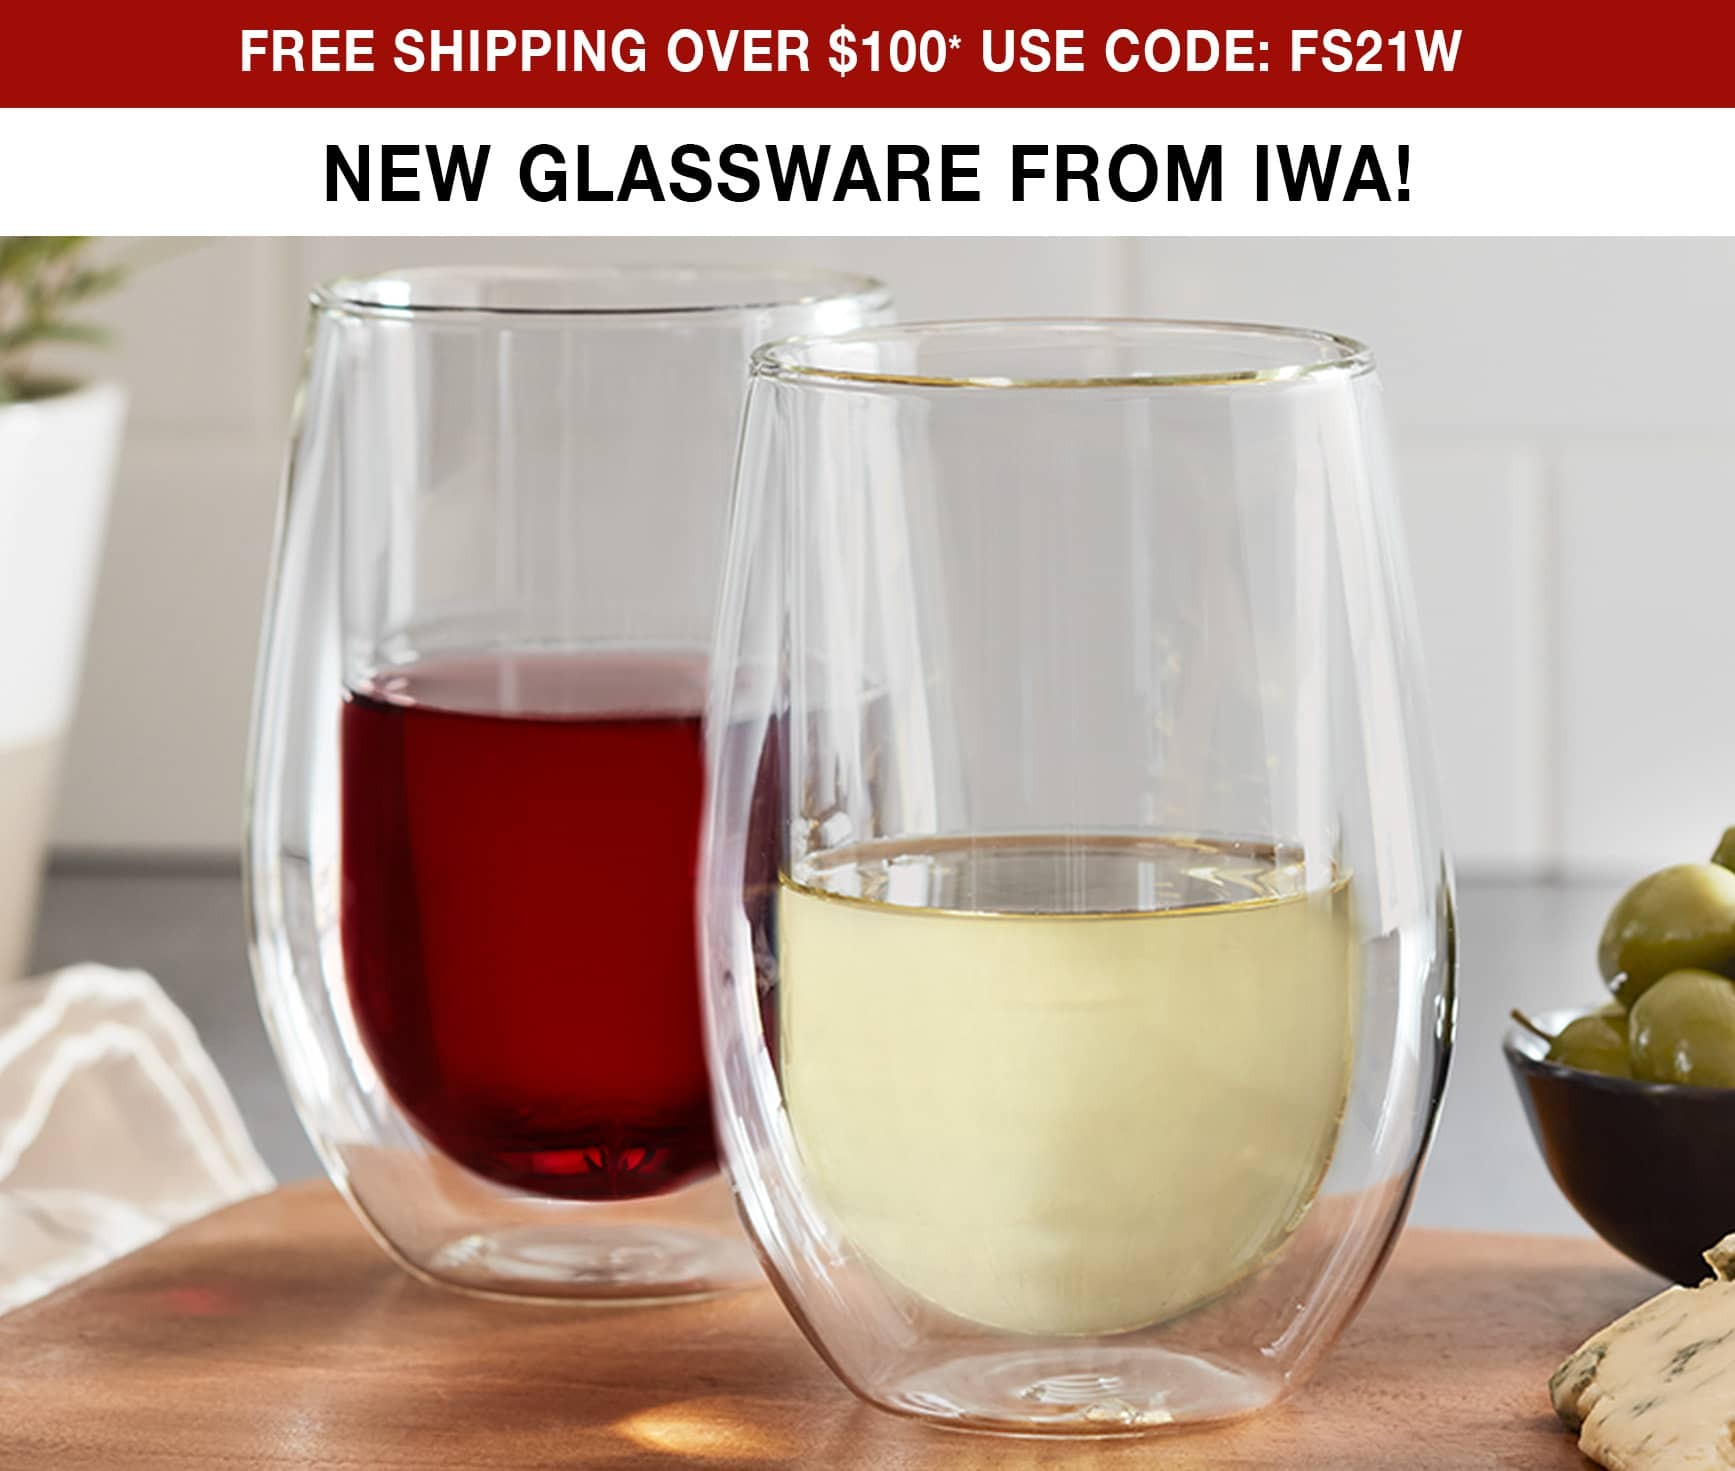 New Glassware From IWA - Free Shipping Over $100* Use Code FS21W